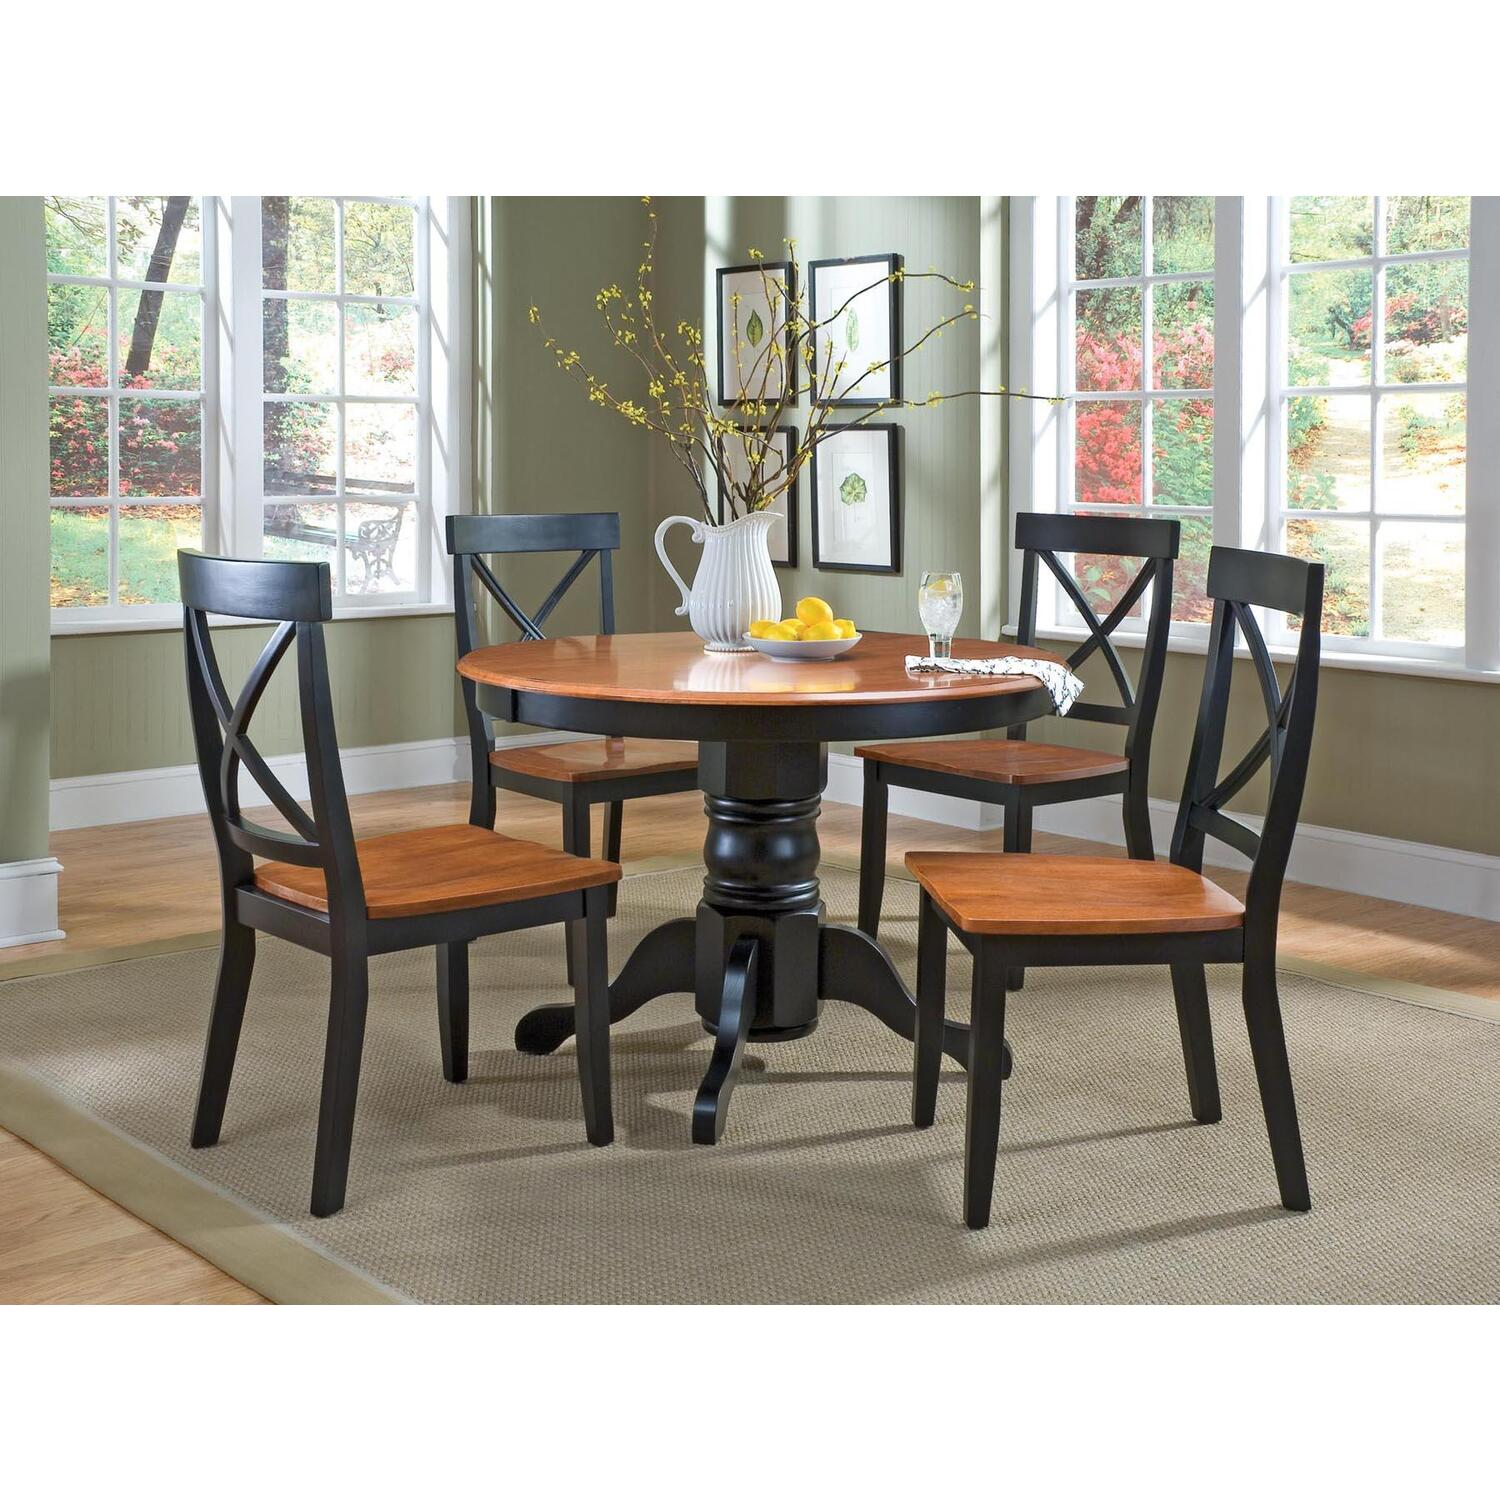 Home Styles 5 Piece Round Pedestal Dining Set By OJ